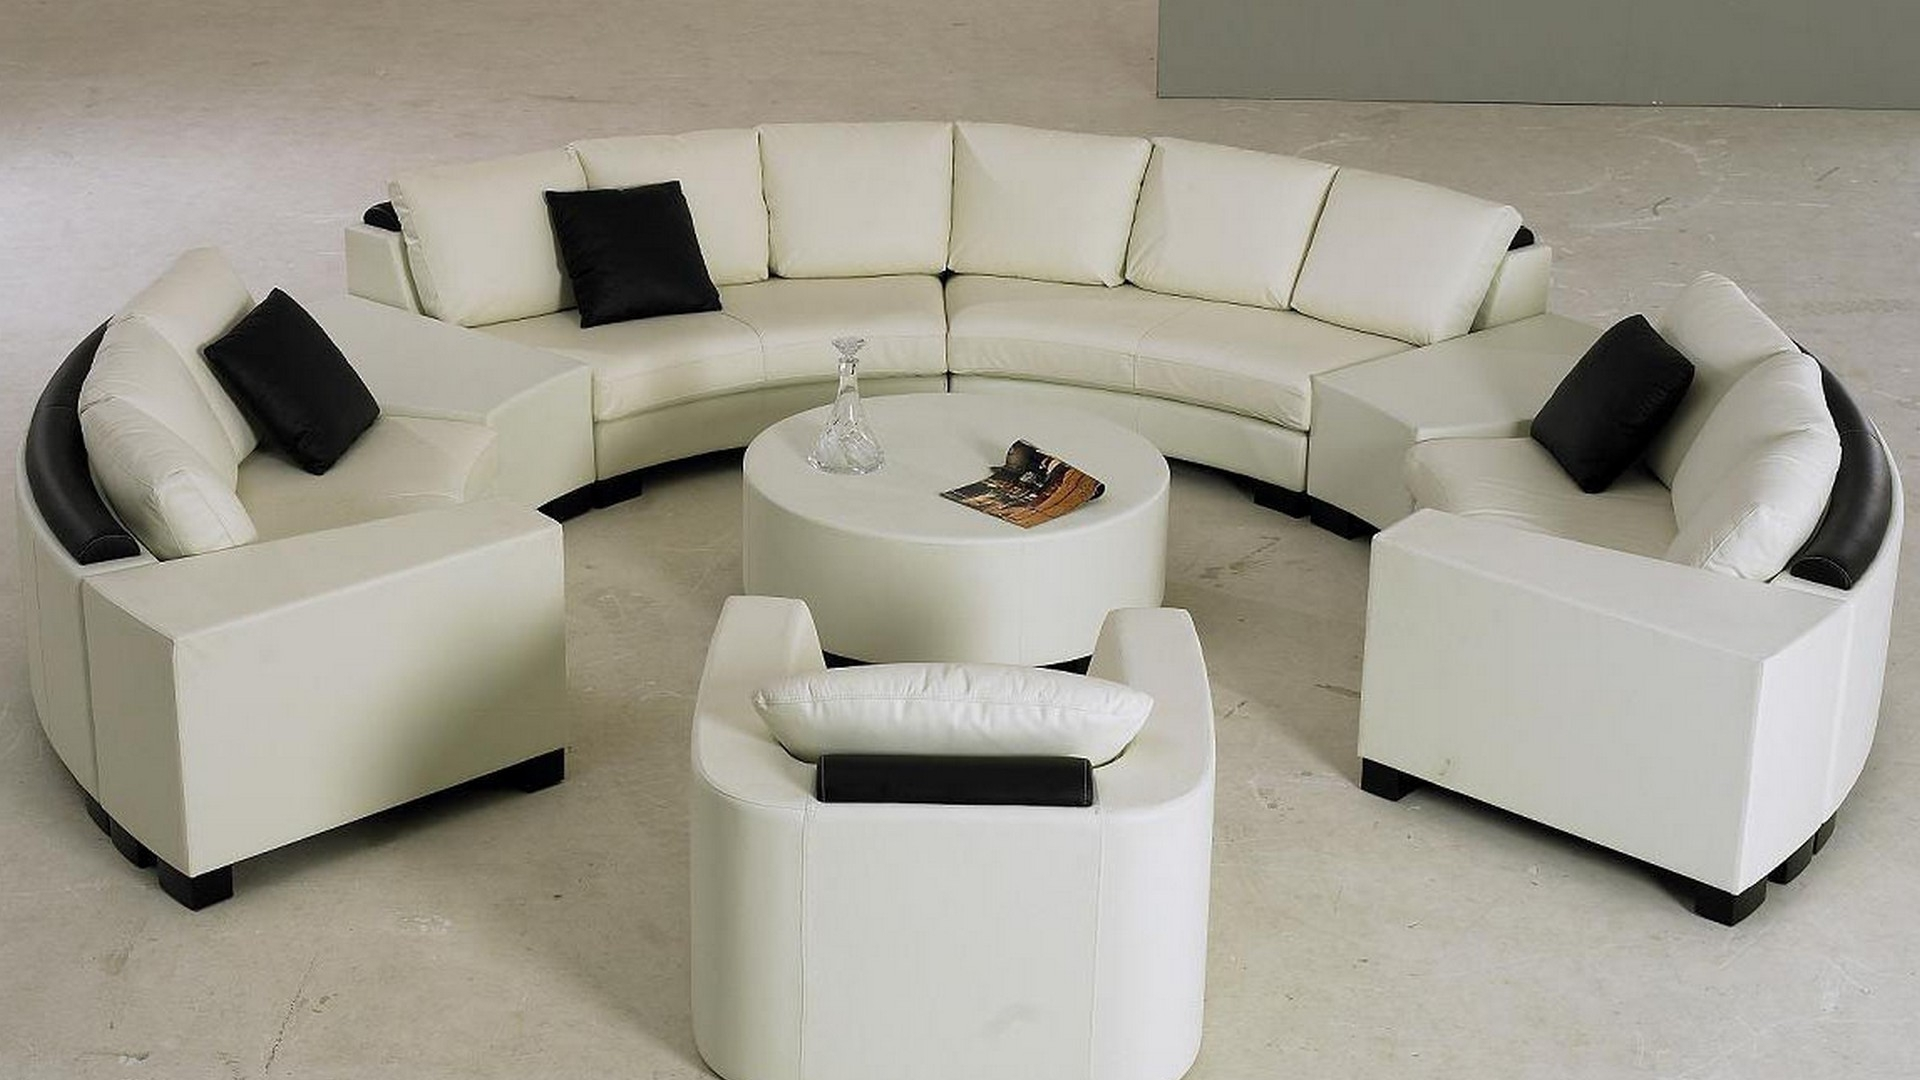 Engagng White Half Round Sofa With Black Pillows And Rond Table Regarding Most Up To Date Round Sofas (View 5 of 20)